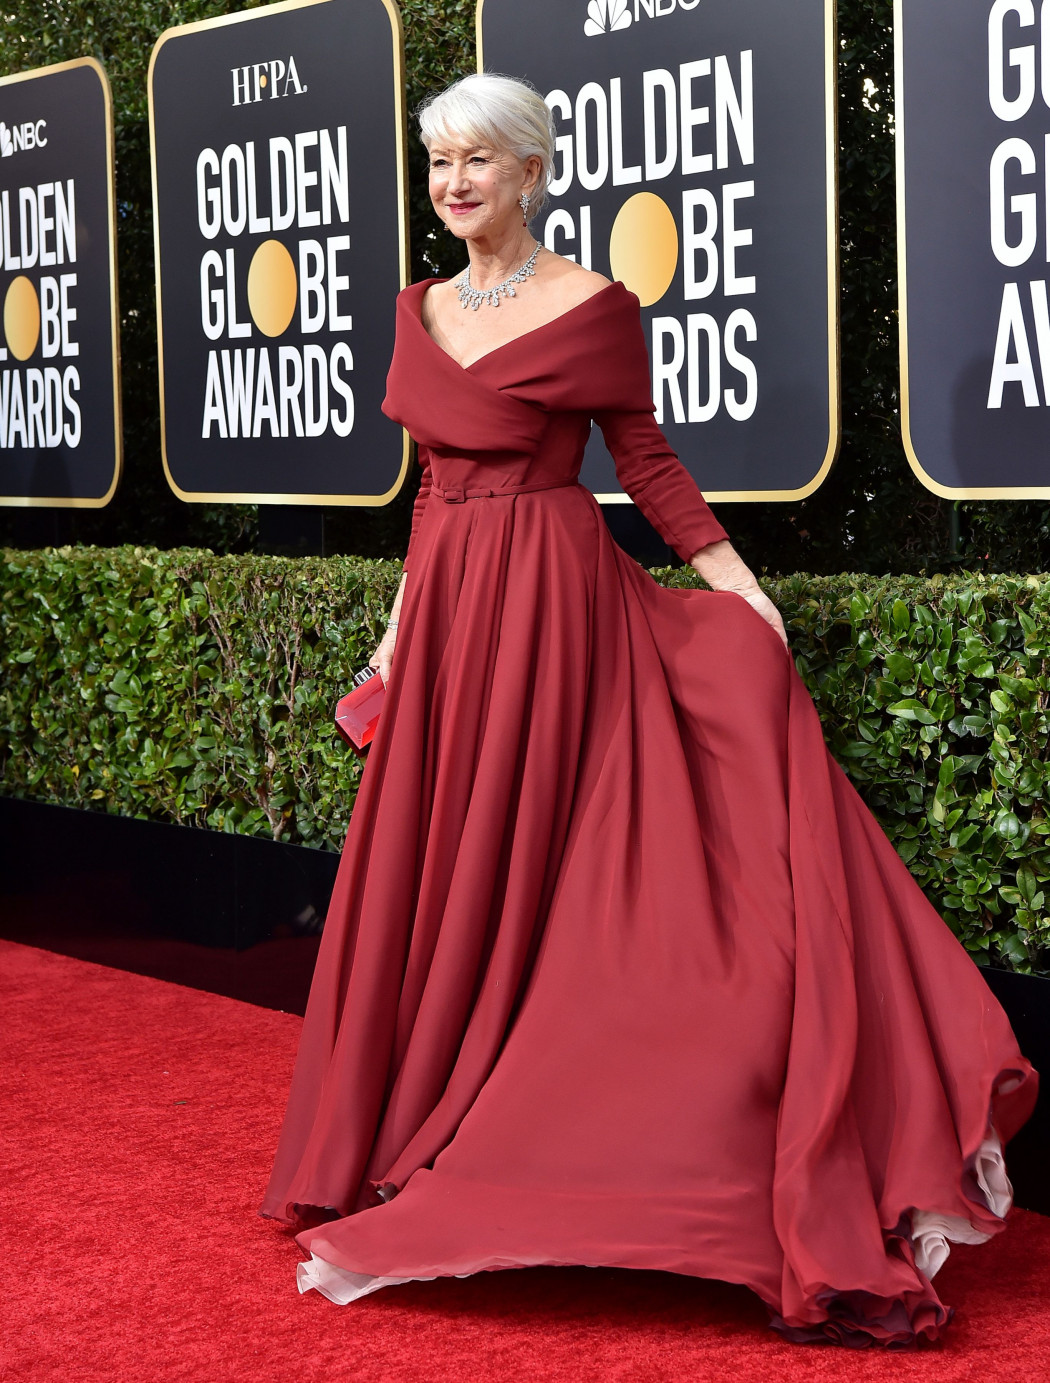 Golden Globes 2020 : les plus beaux looks du tapis rouge - 24